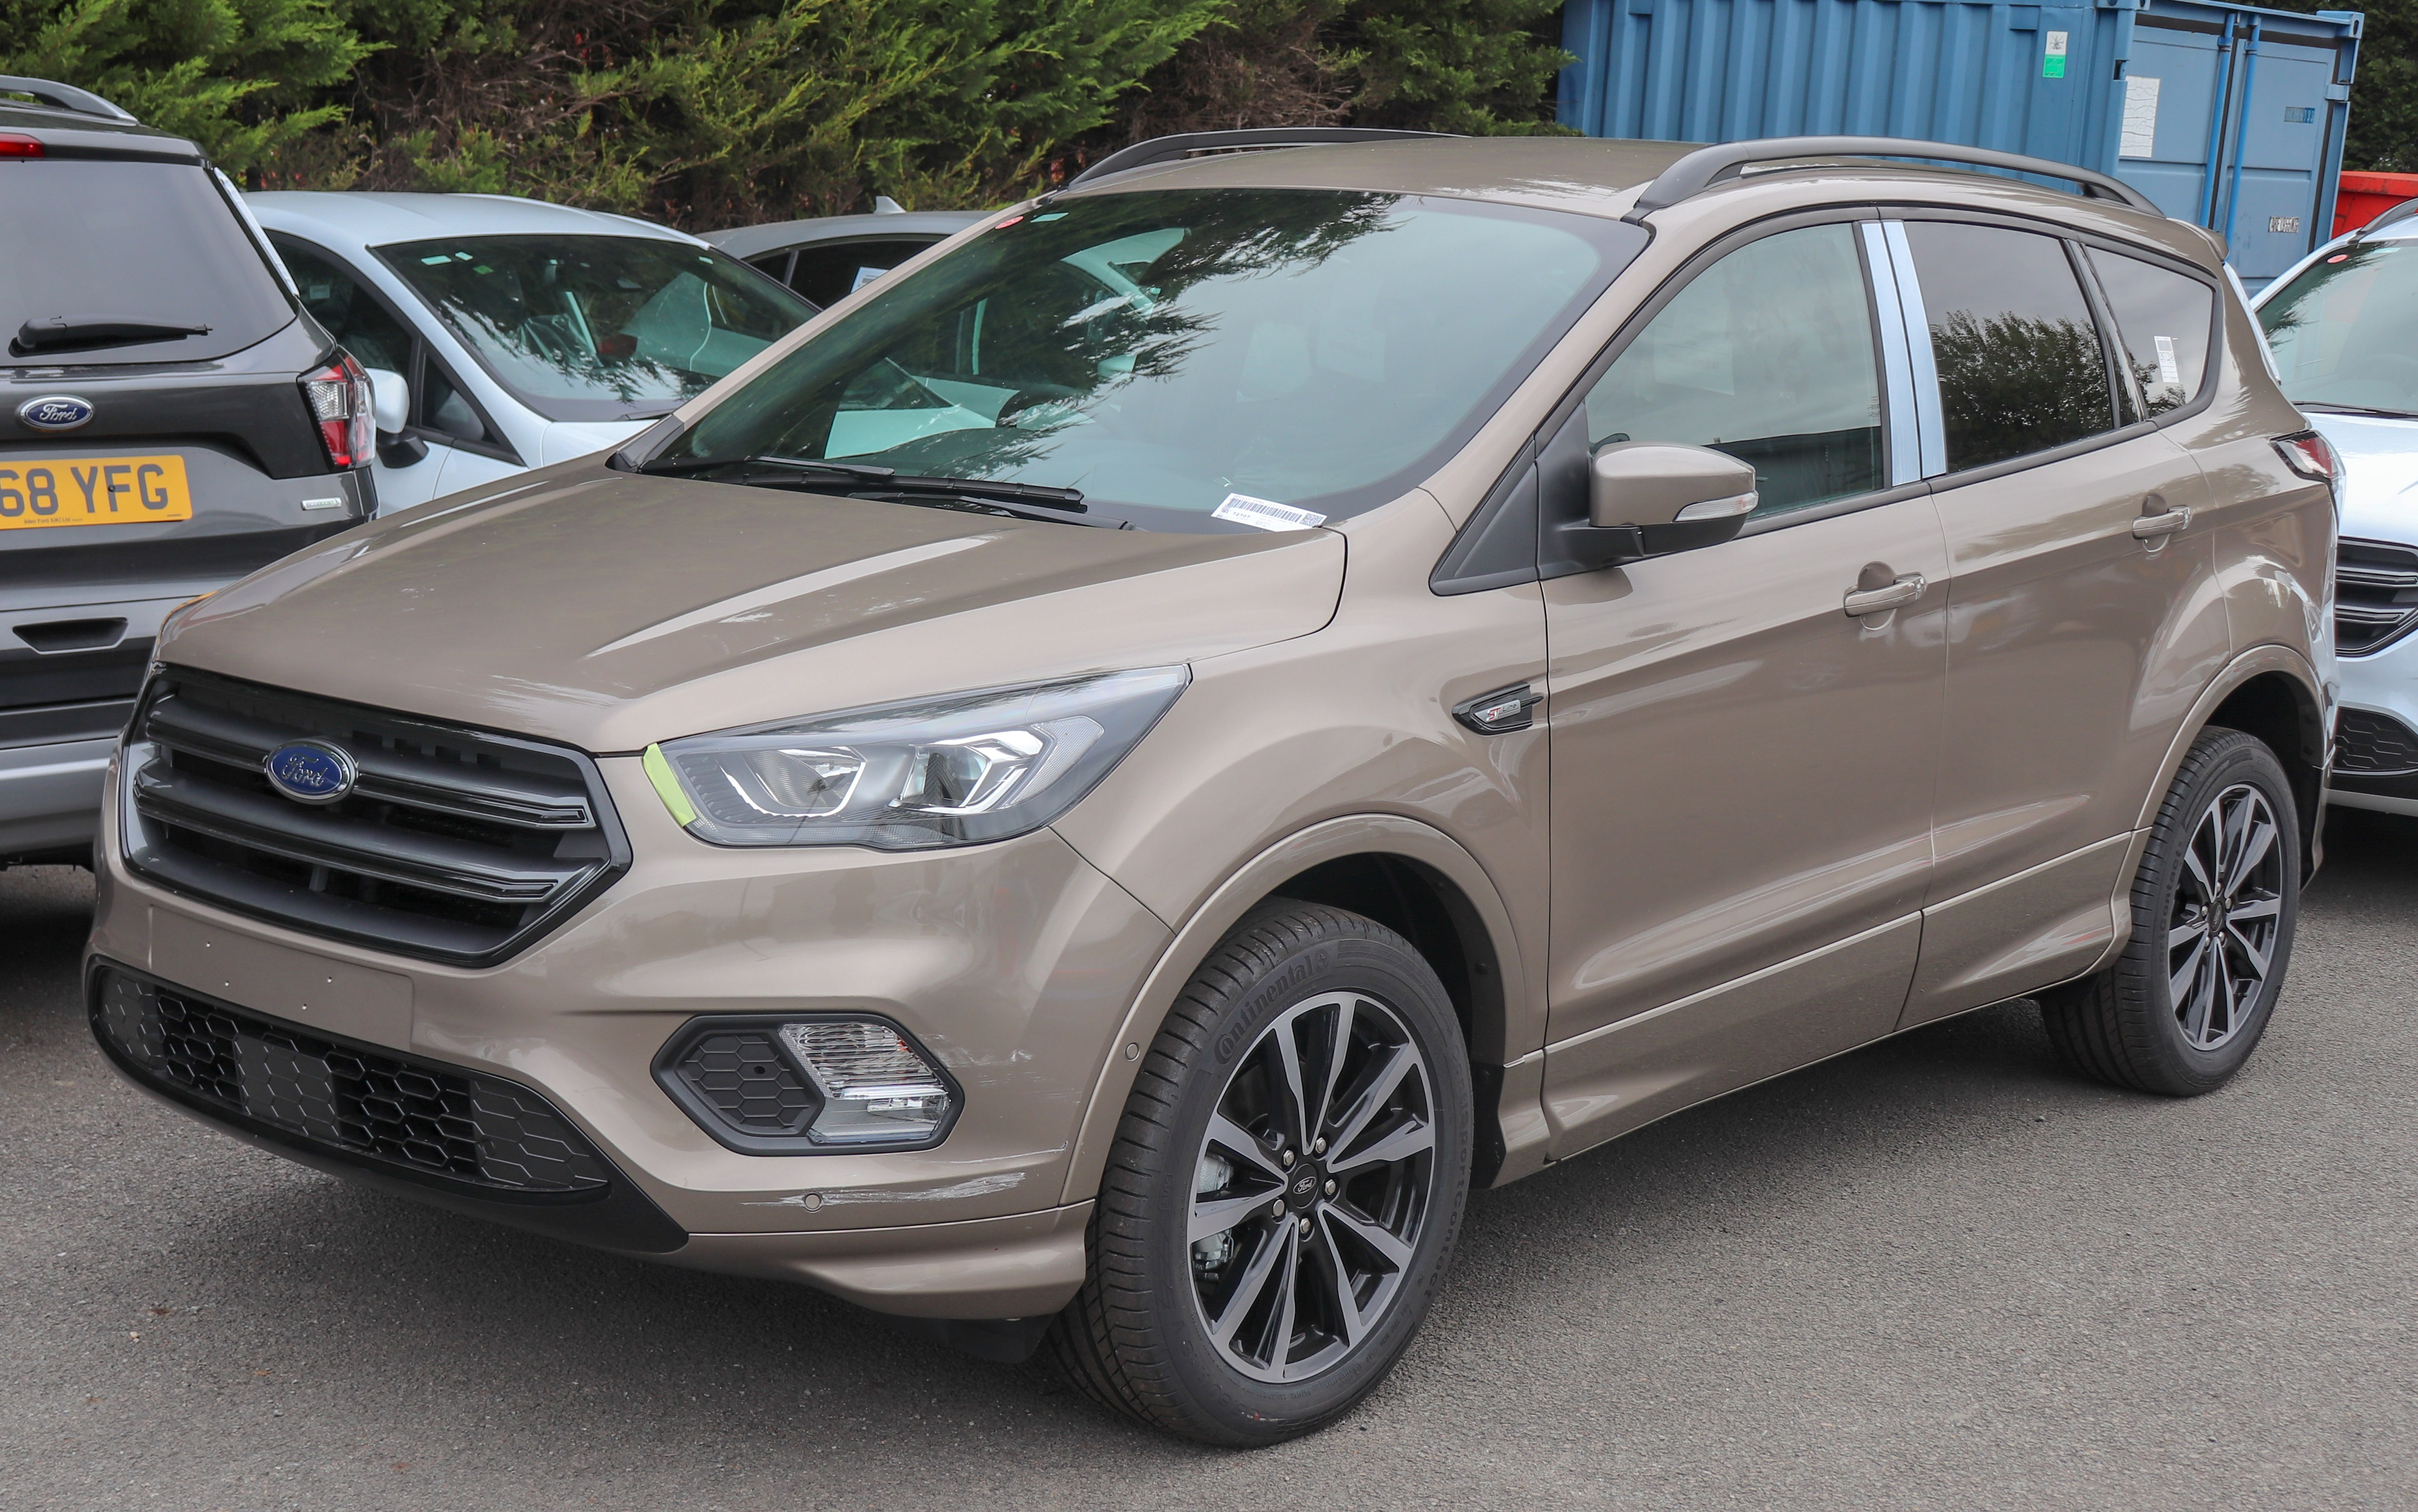 Ford Kuga - The complete information and online sale with free